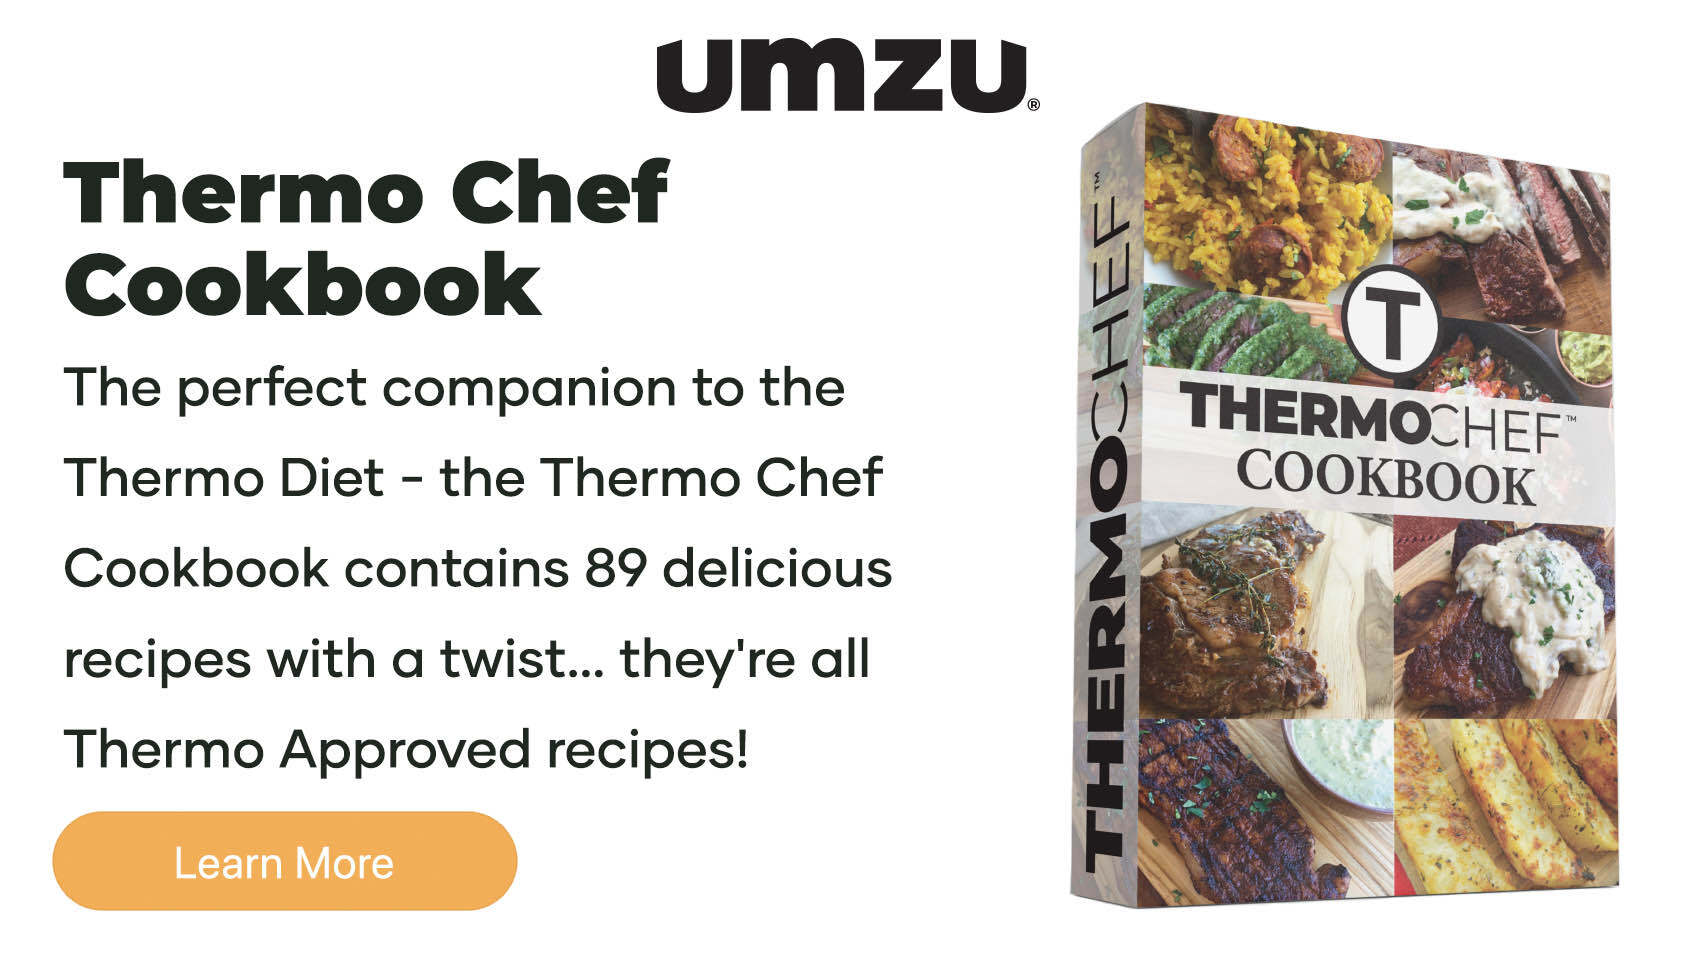 Thermochef Cookbook